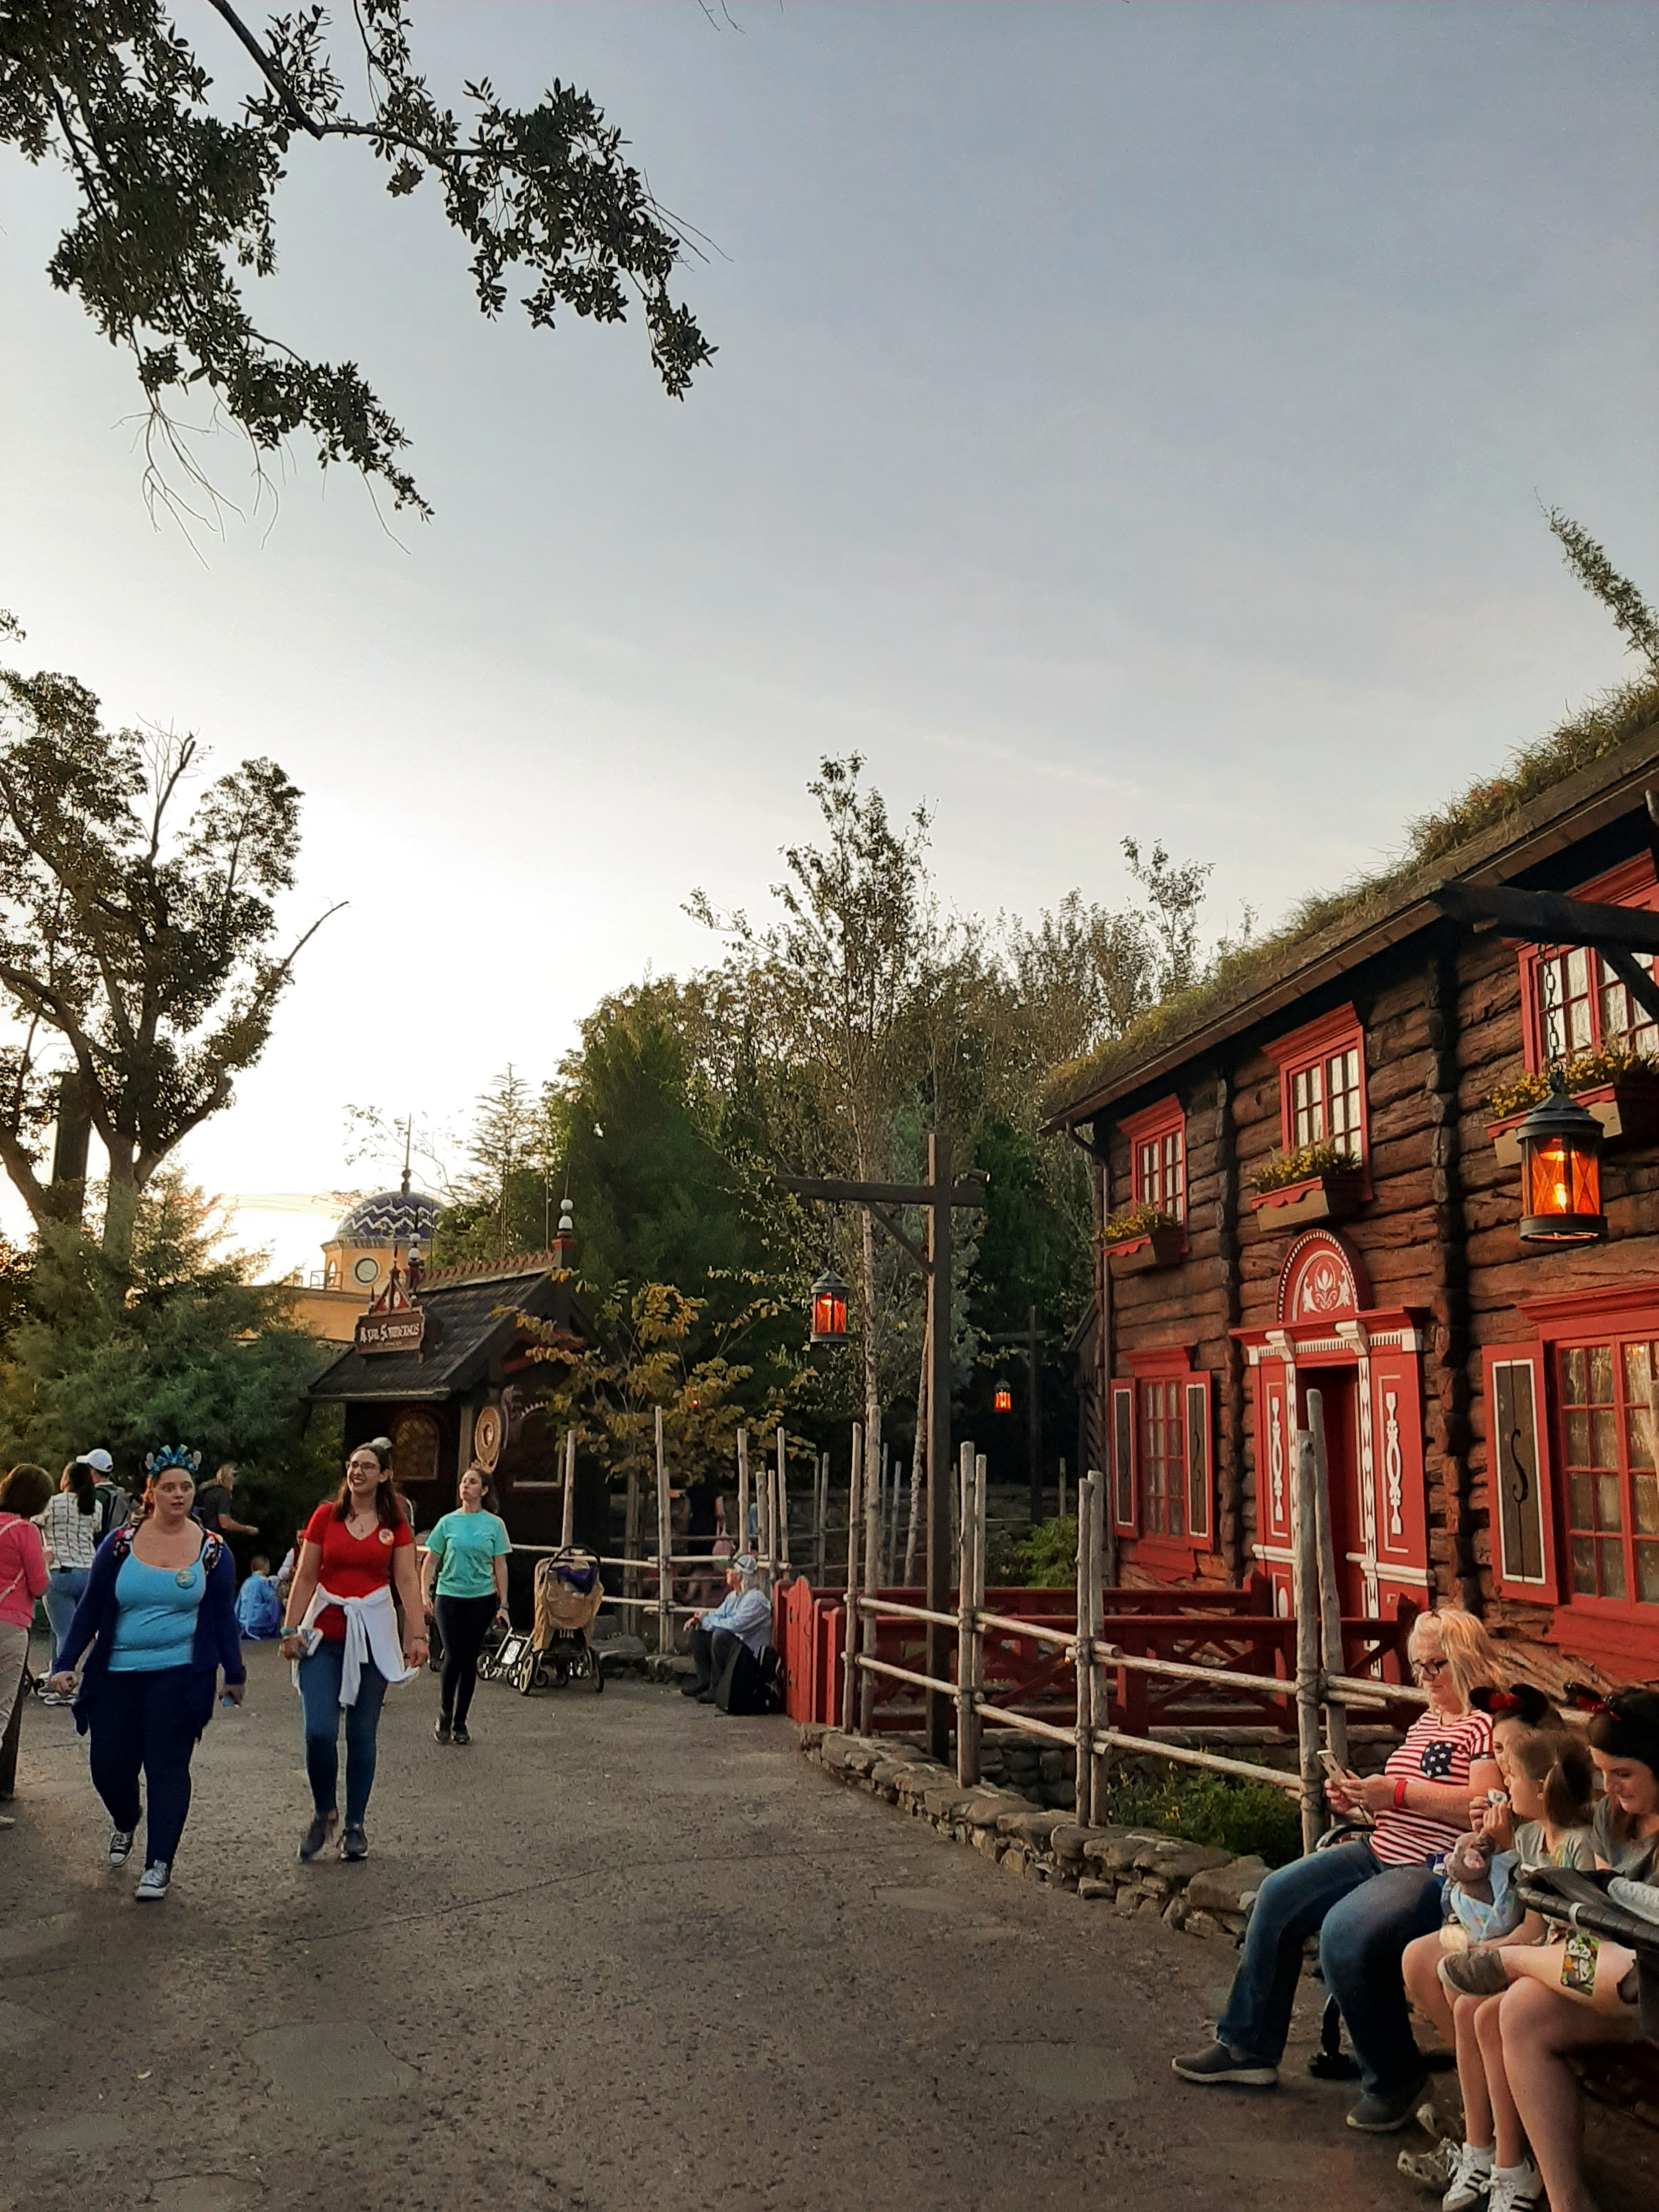 Brown log house and crowds in Norway at EPCOT's World Showcase